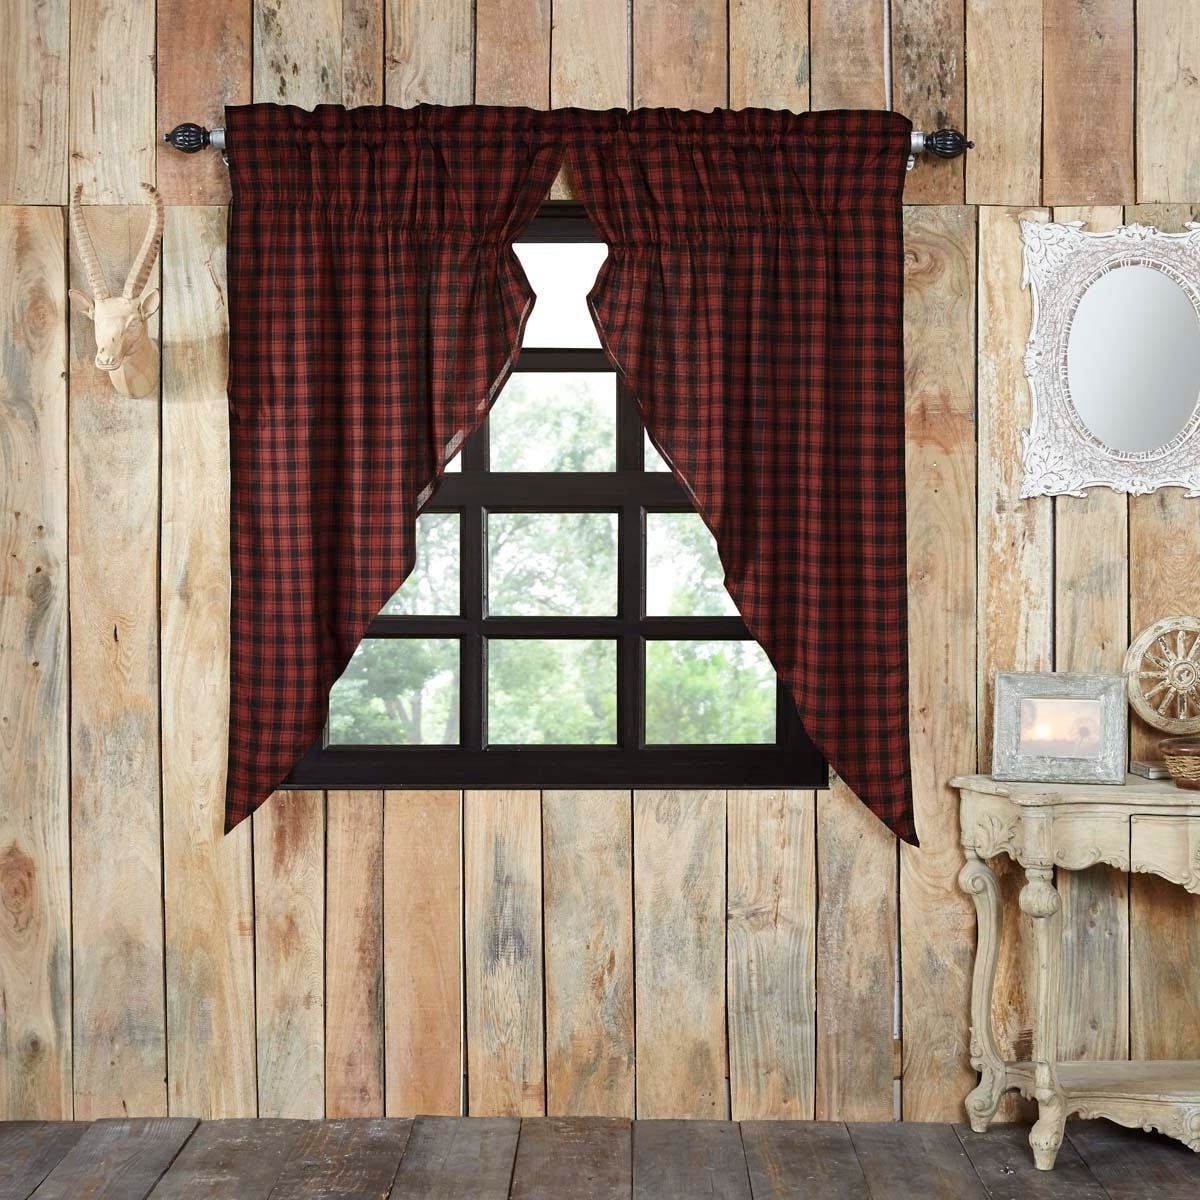 Red Rustic Curtains Vhc Cumberland Prairie Panel Pair Rod Pocket Cotton Buffalo Check – Prairie Panel 63x36 Pertaining To Latest Cumberland Tier Pair Rod Pocket Cotton Buffalo Check Kitchen Curtains (View 2 of 20)